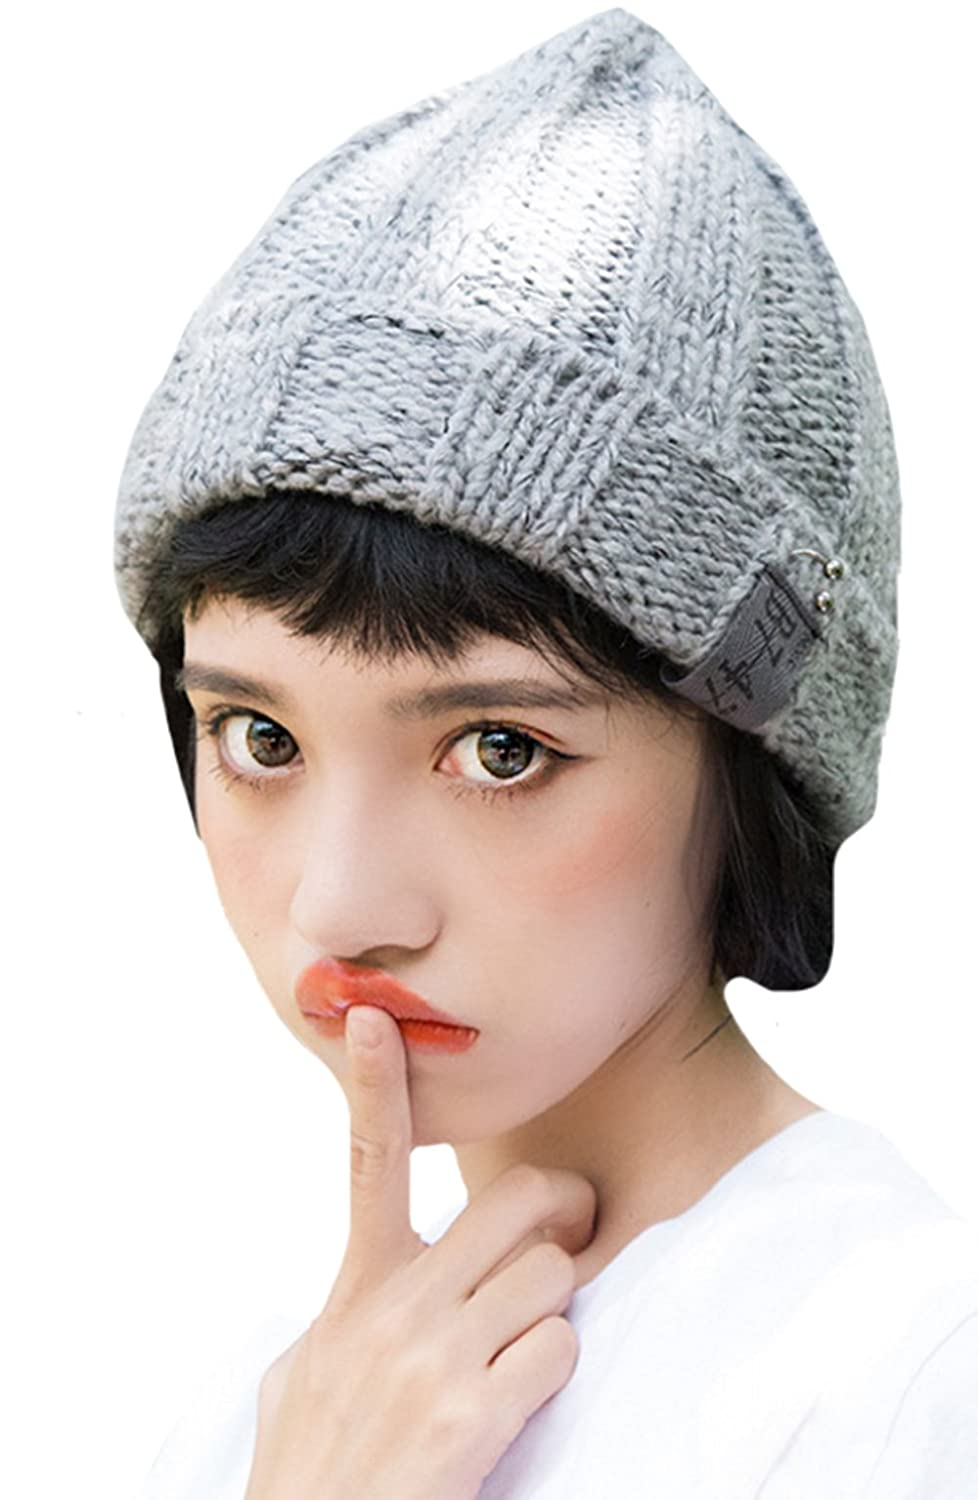 ZEHAT New Gray Pure Handmade Knitted Wool Hat Girls Women Caps Winter Warm  Headwrap accessories at Amazon Women s Clothing store  ba6a67b95d98